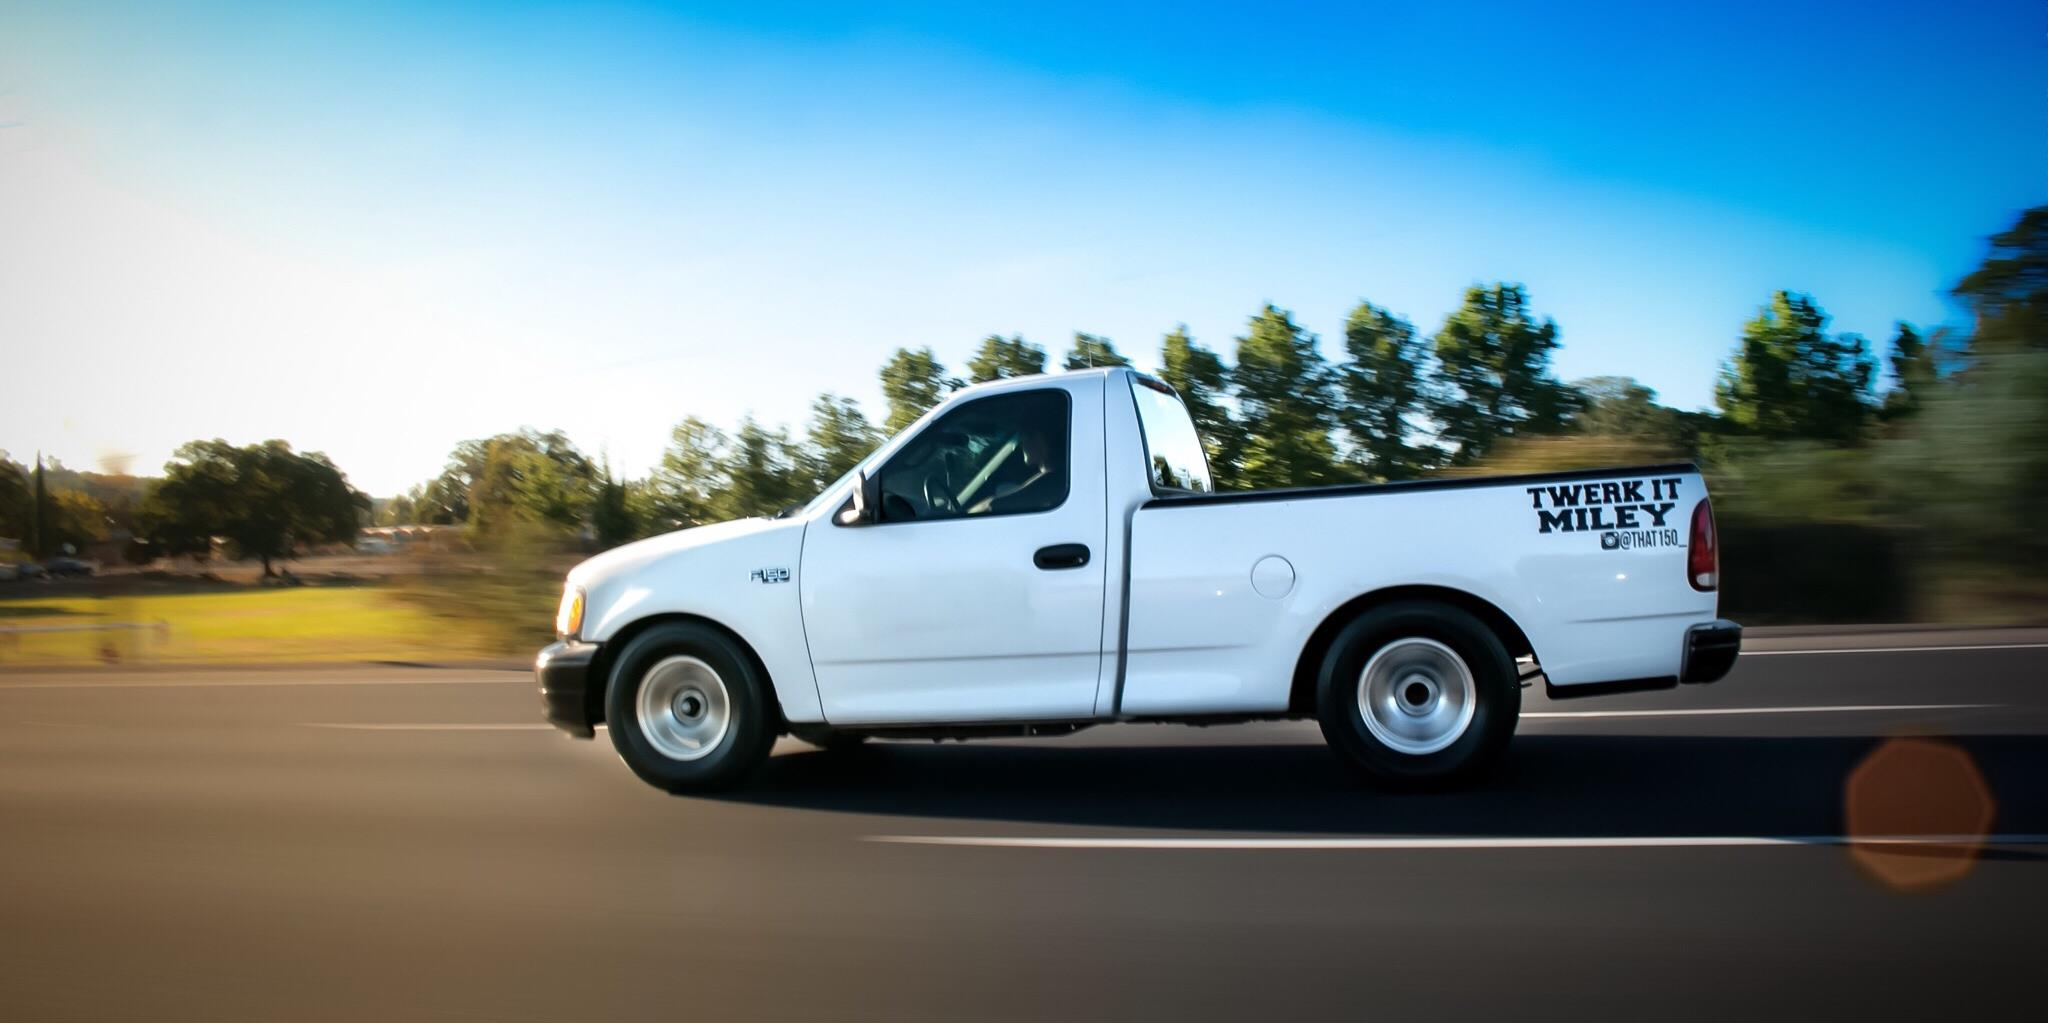 Project Mystery 2001 Ford F150 Regular Cab